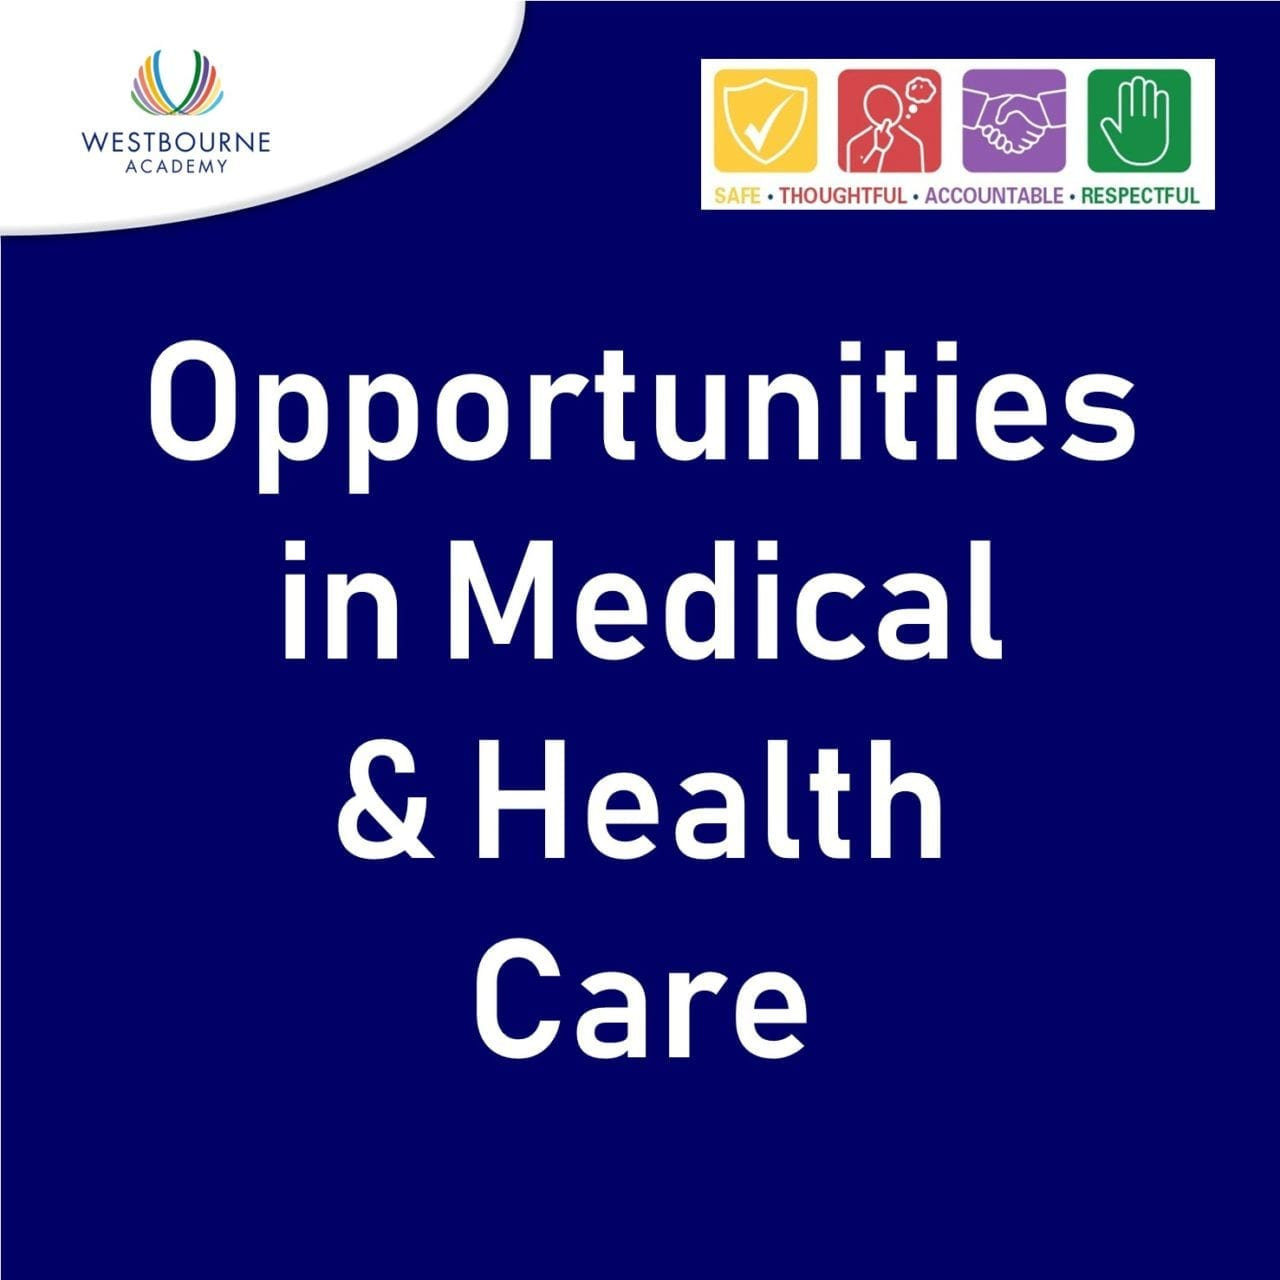 Opportunities in Medical & Health Care